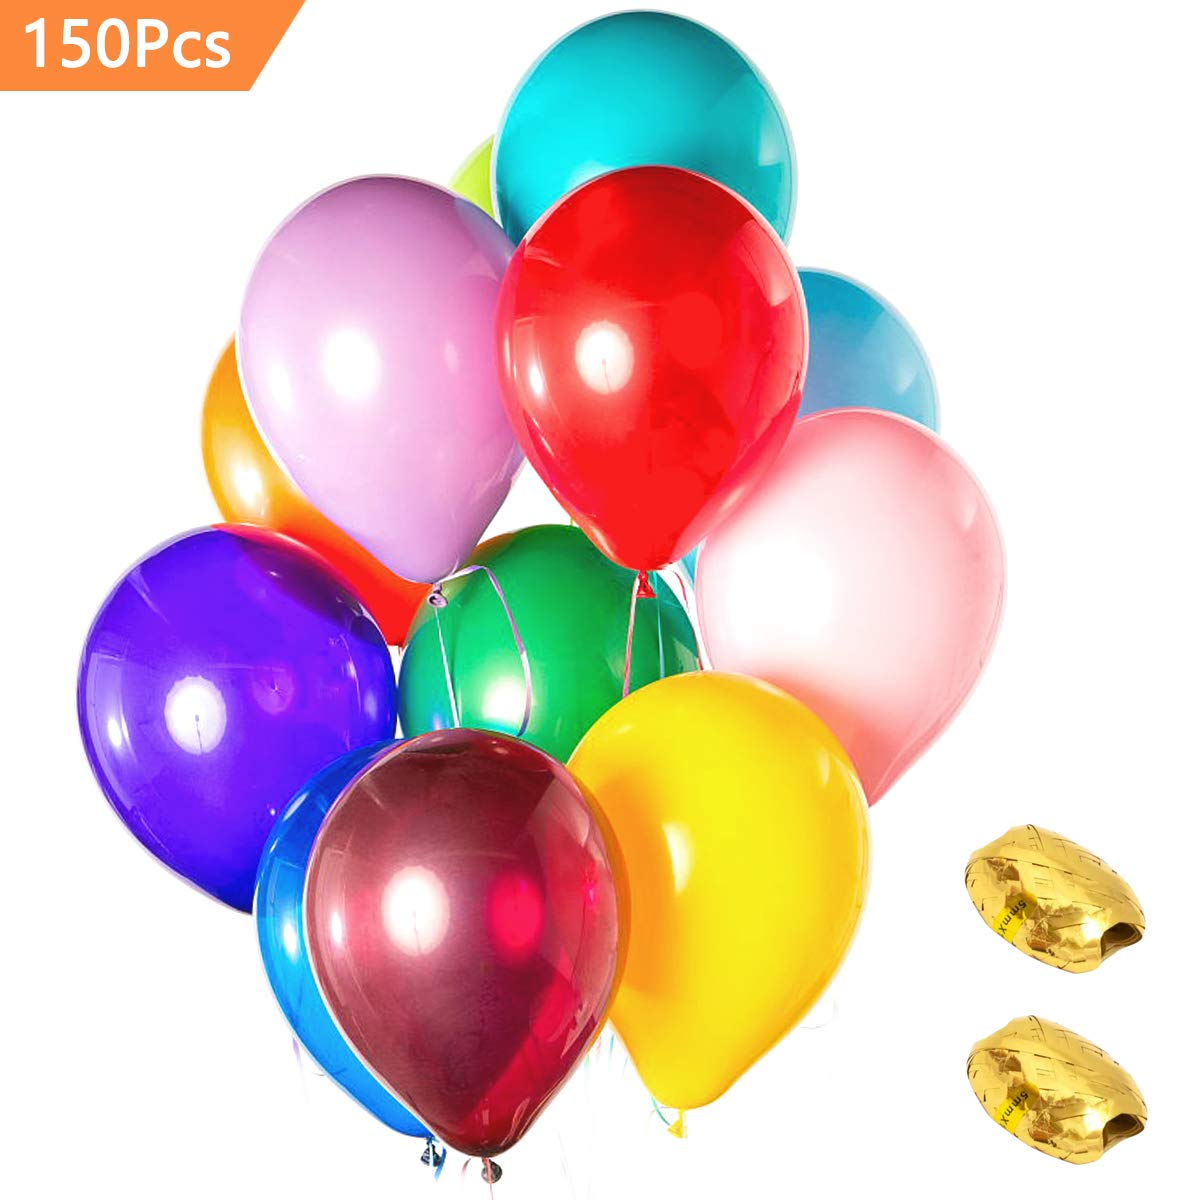 (150 Packs) AOYOO Party Balloons 12-Inch Color Set, Balloon Decoration, Quality Latex Balloons for Birthday Wedding Party Home Decoration, Colorful Helium Balloons Make Your Event More Colorful